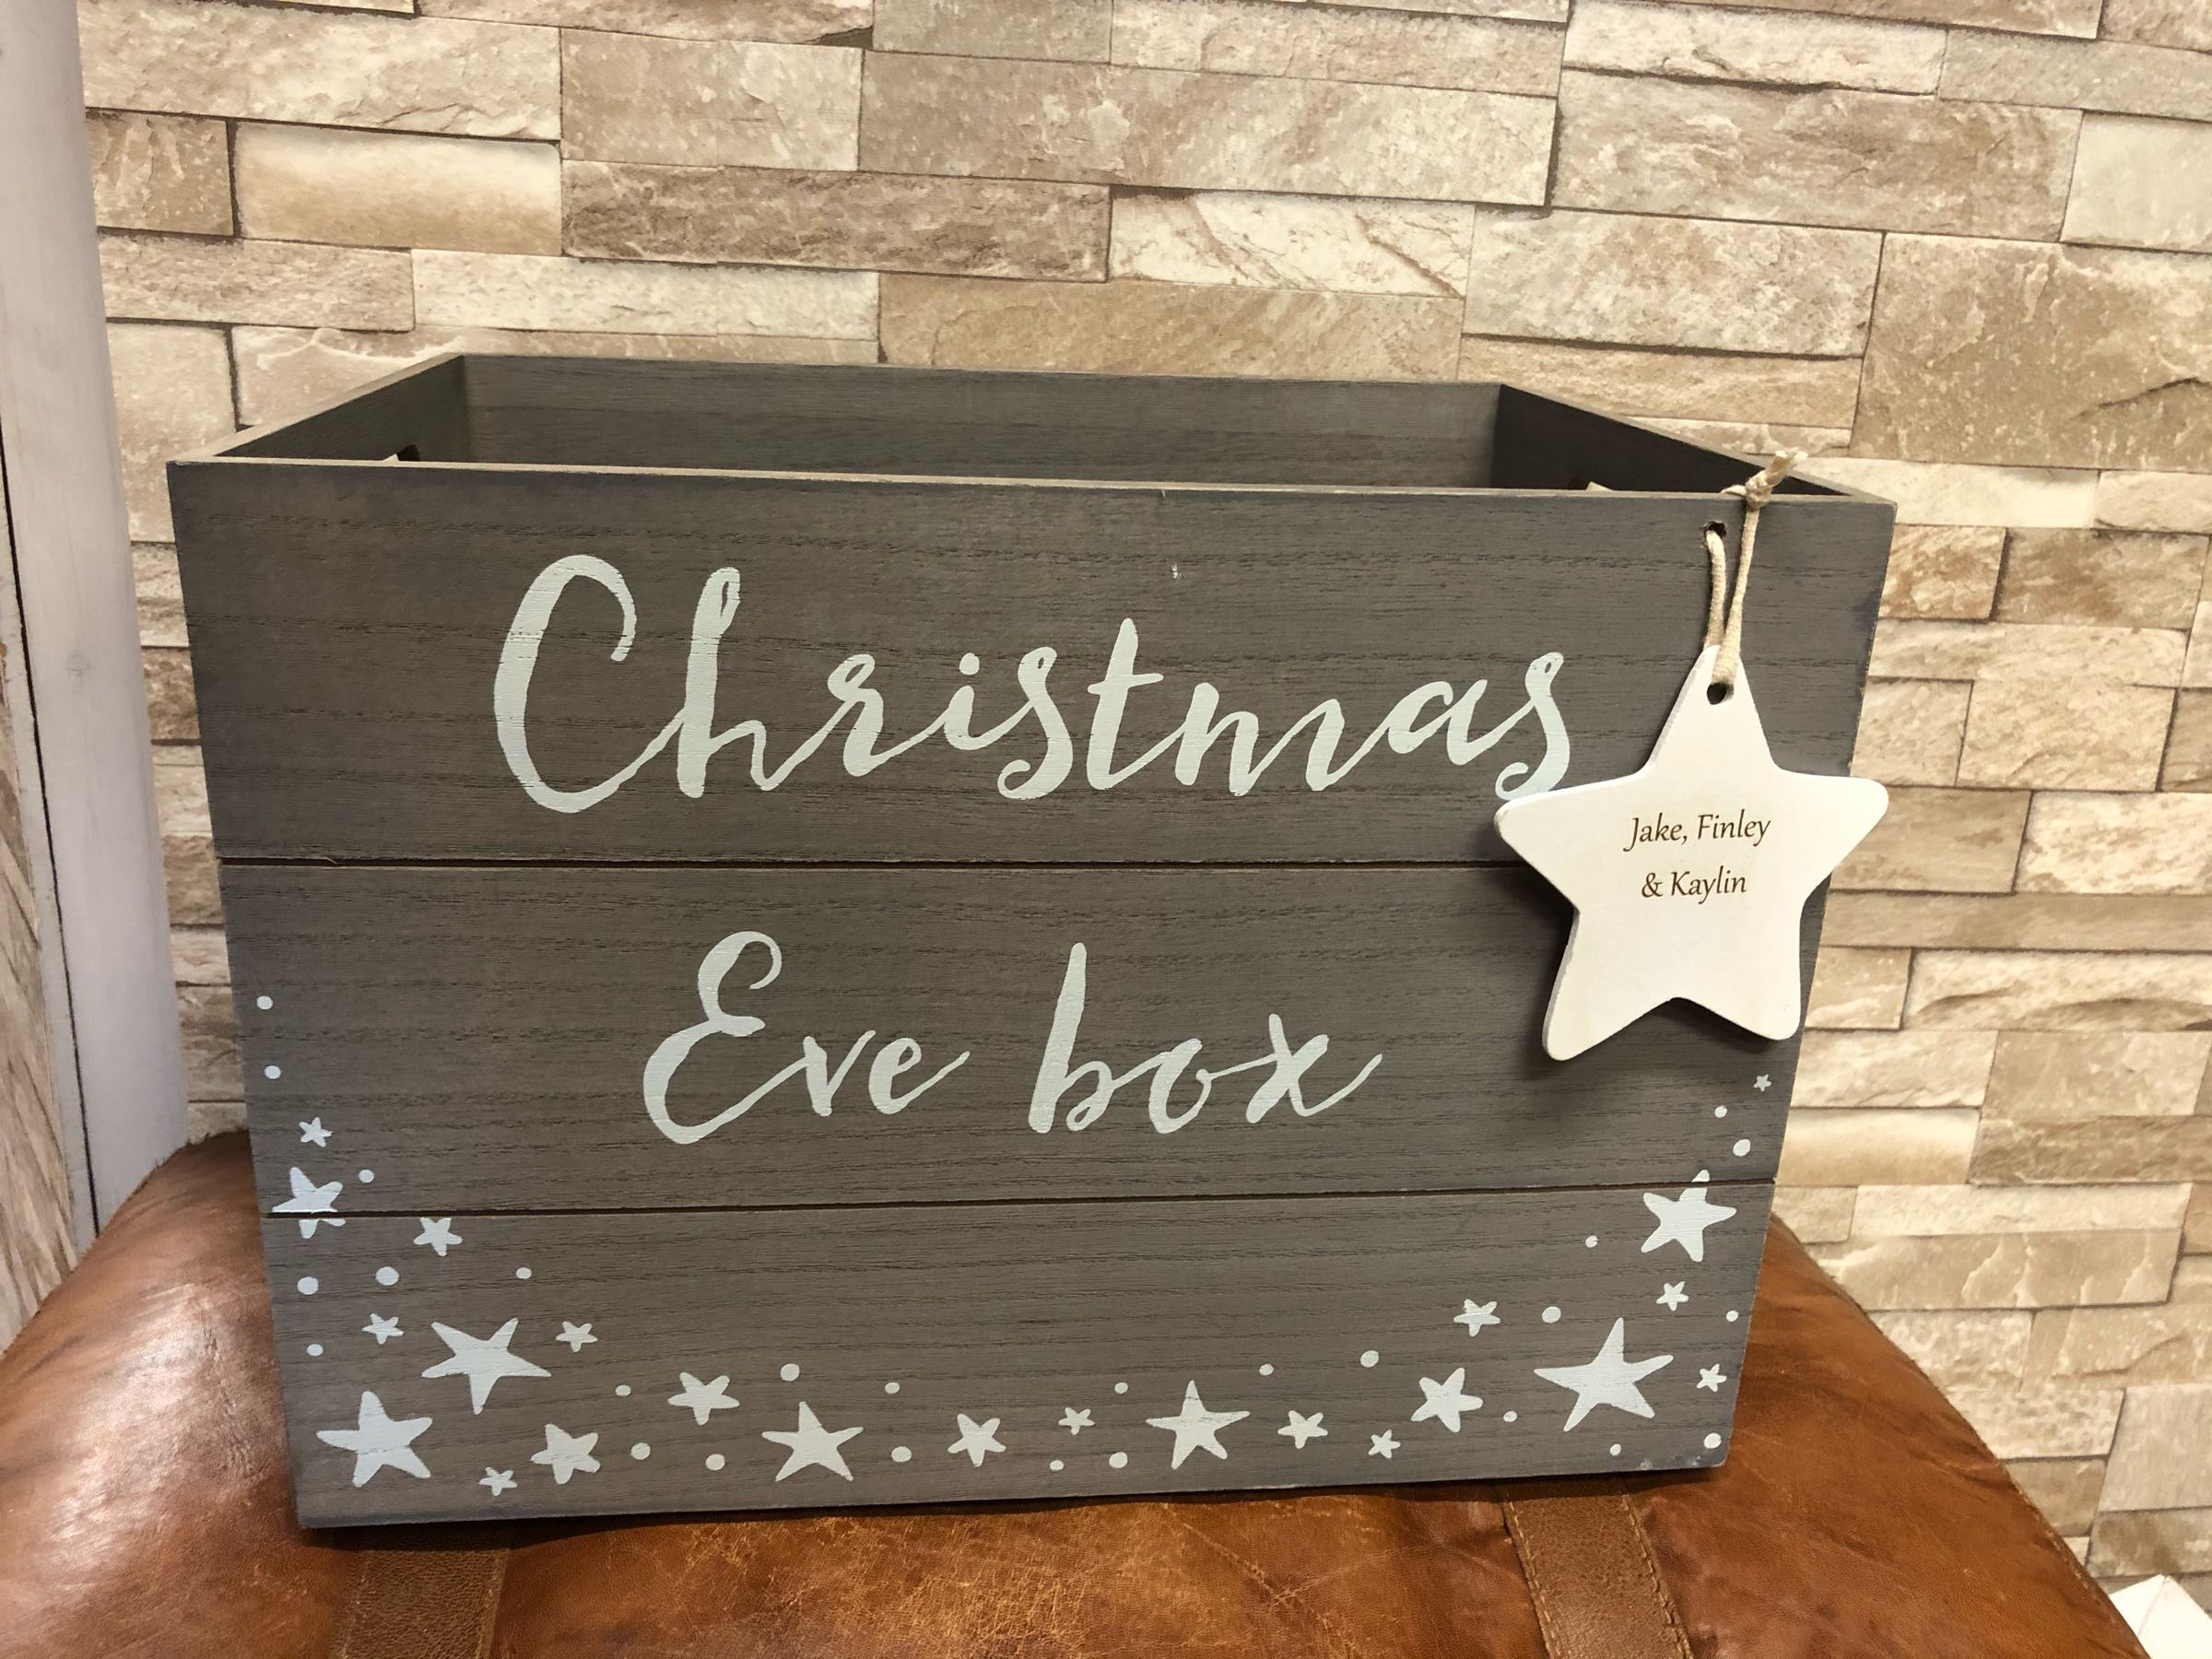 Christmas Eve crate (includes personalisation)